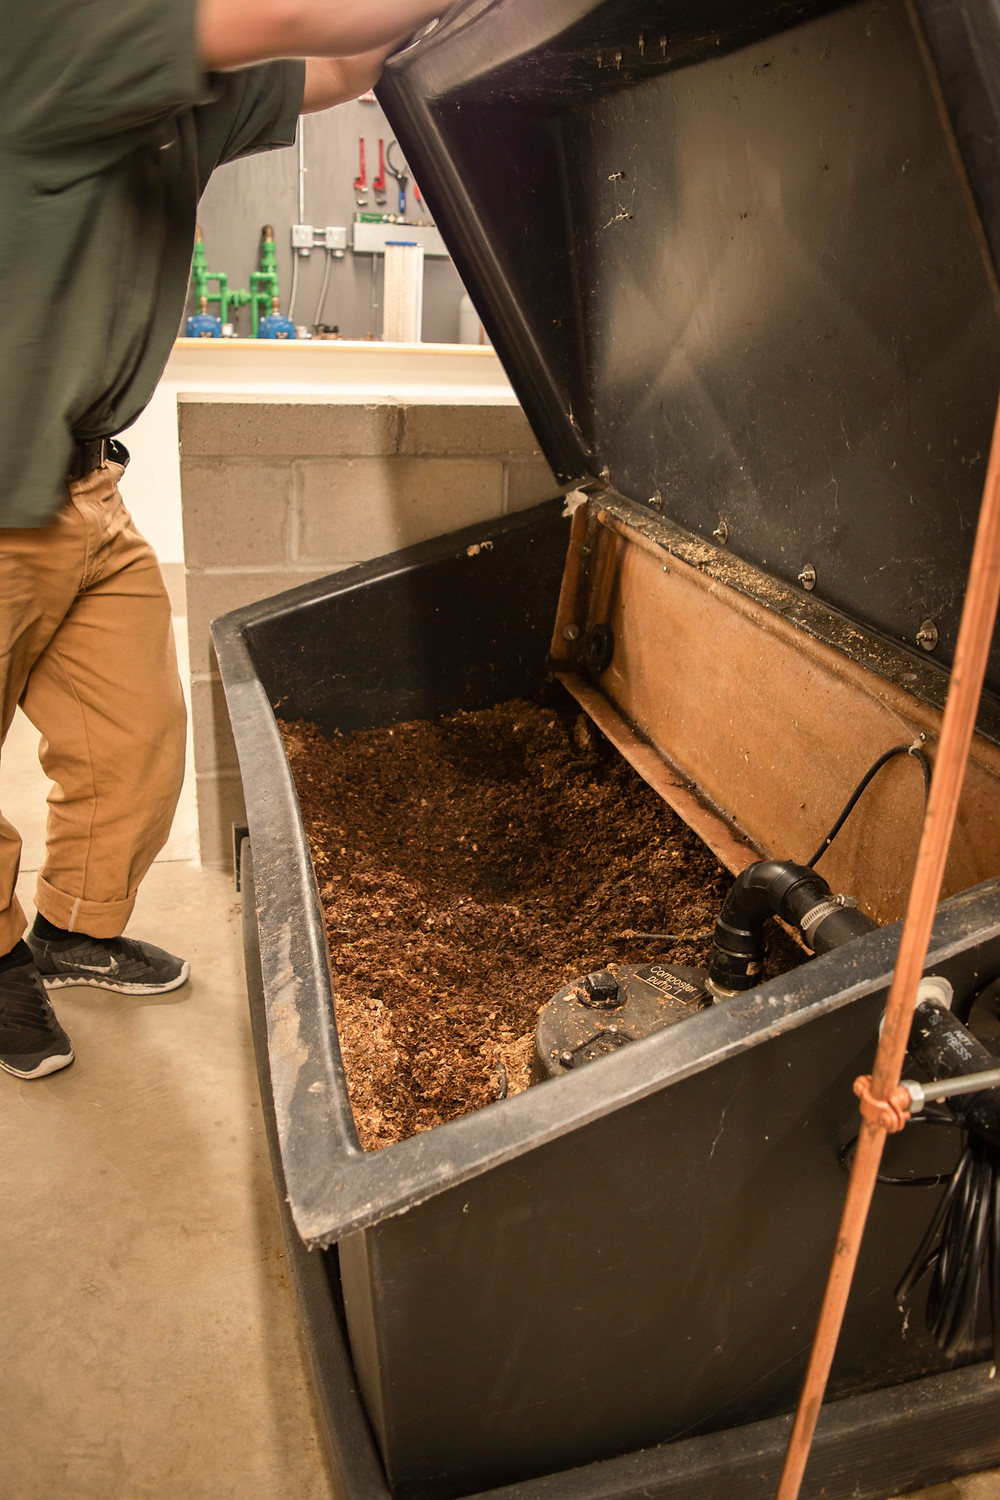 Oliver opens the waste bin which has organic mulch recycled from the composting toilets.  At this stage it is just nutrients remaining from the waste.